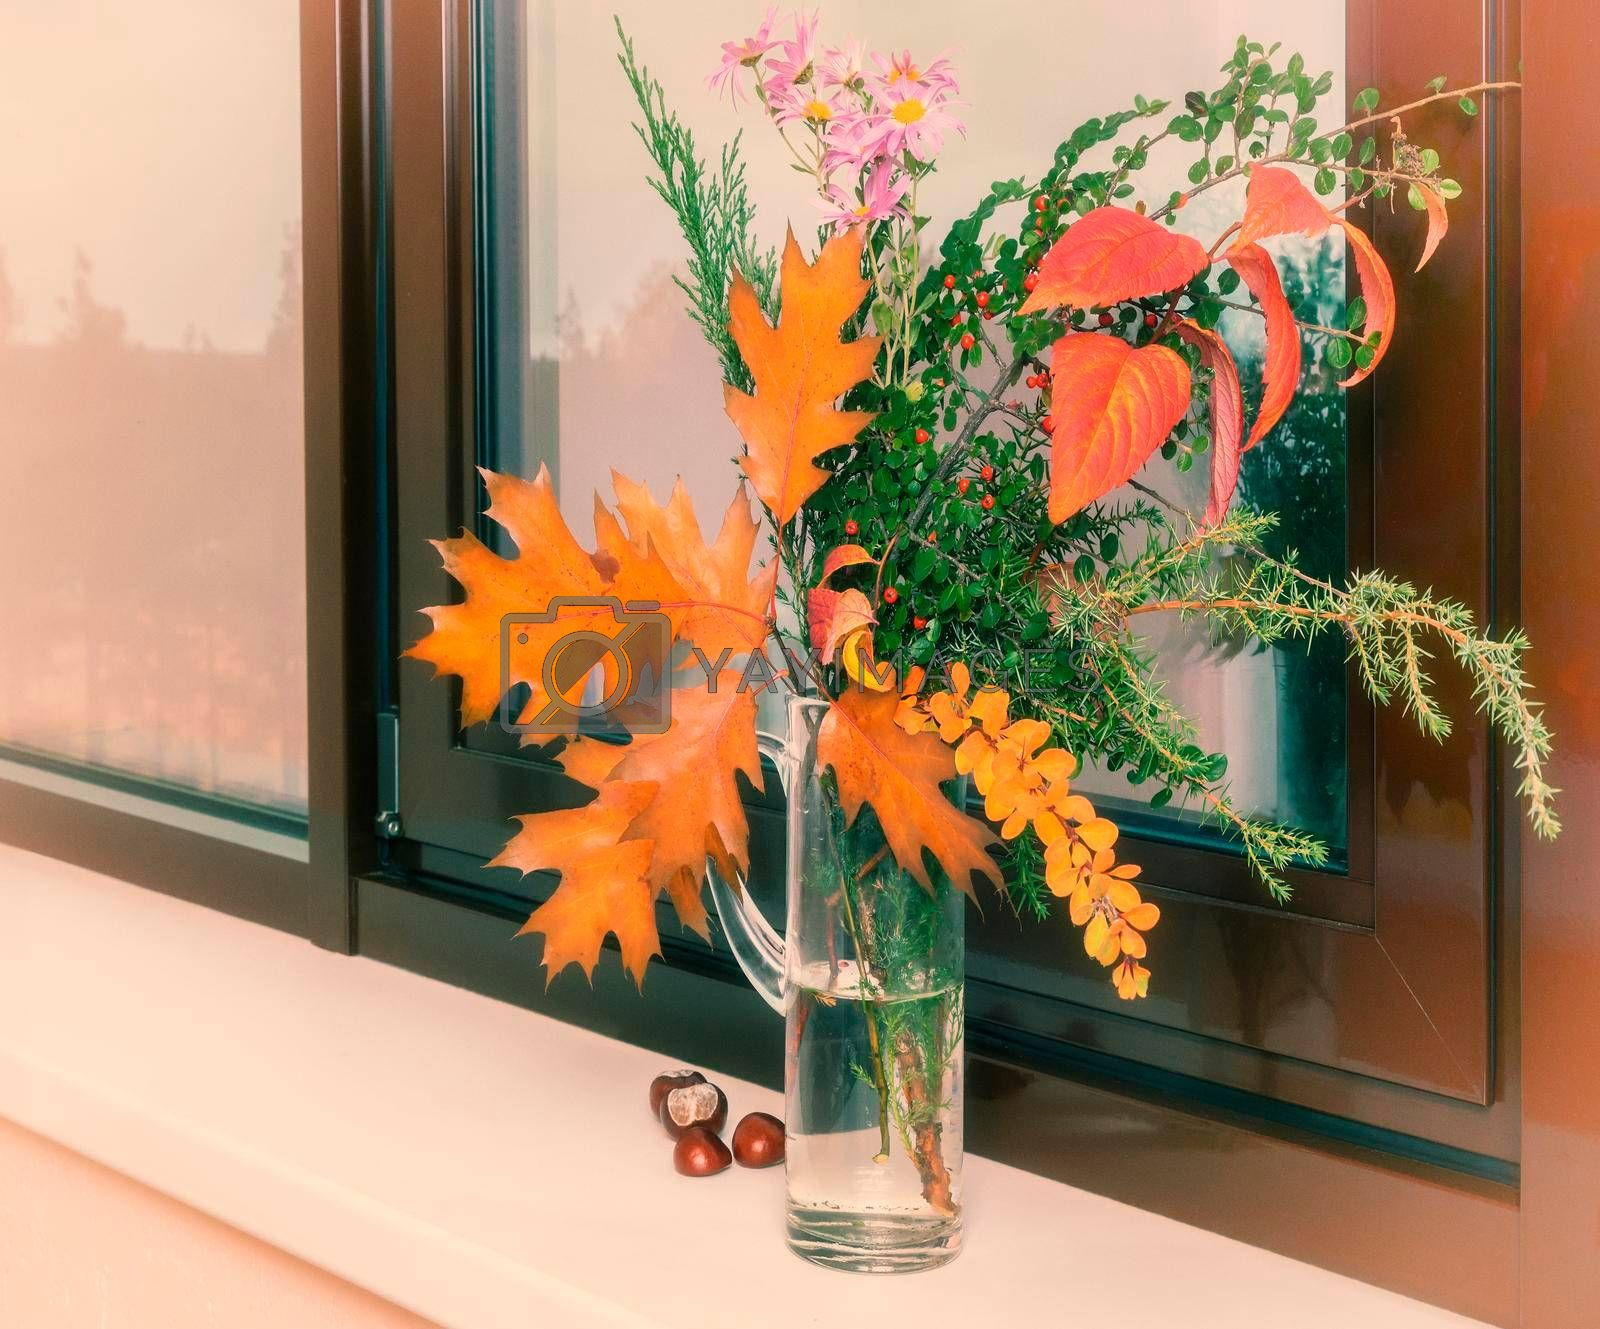 On the window sill in a glass decanter beautiful autumn bouquet of flowers and bright autumn leaves.